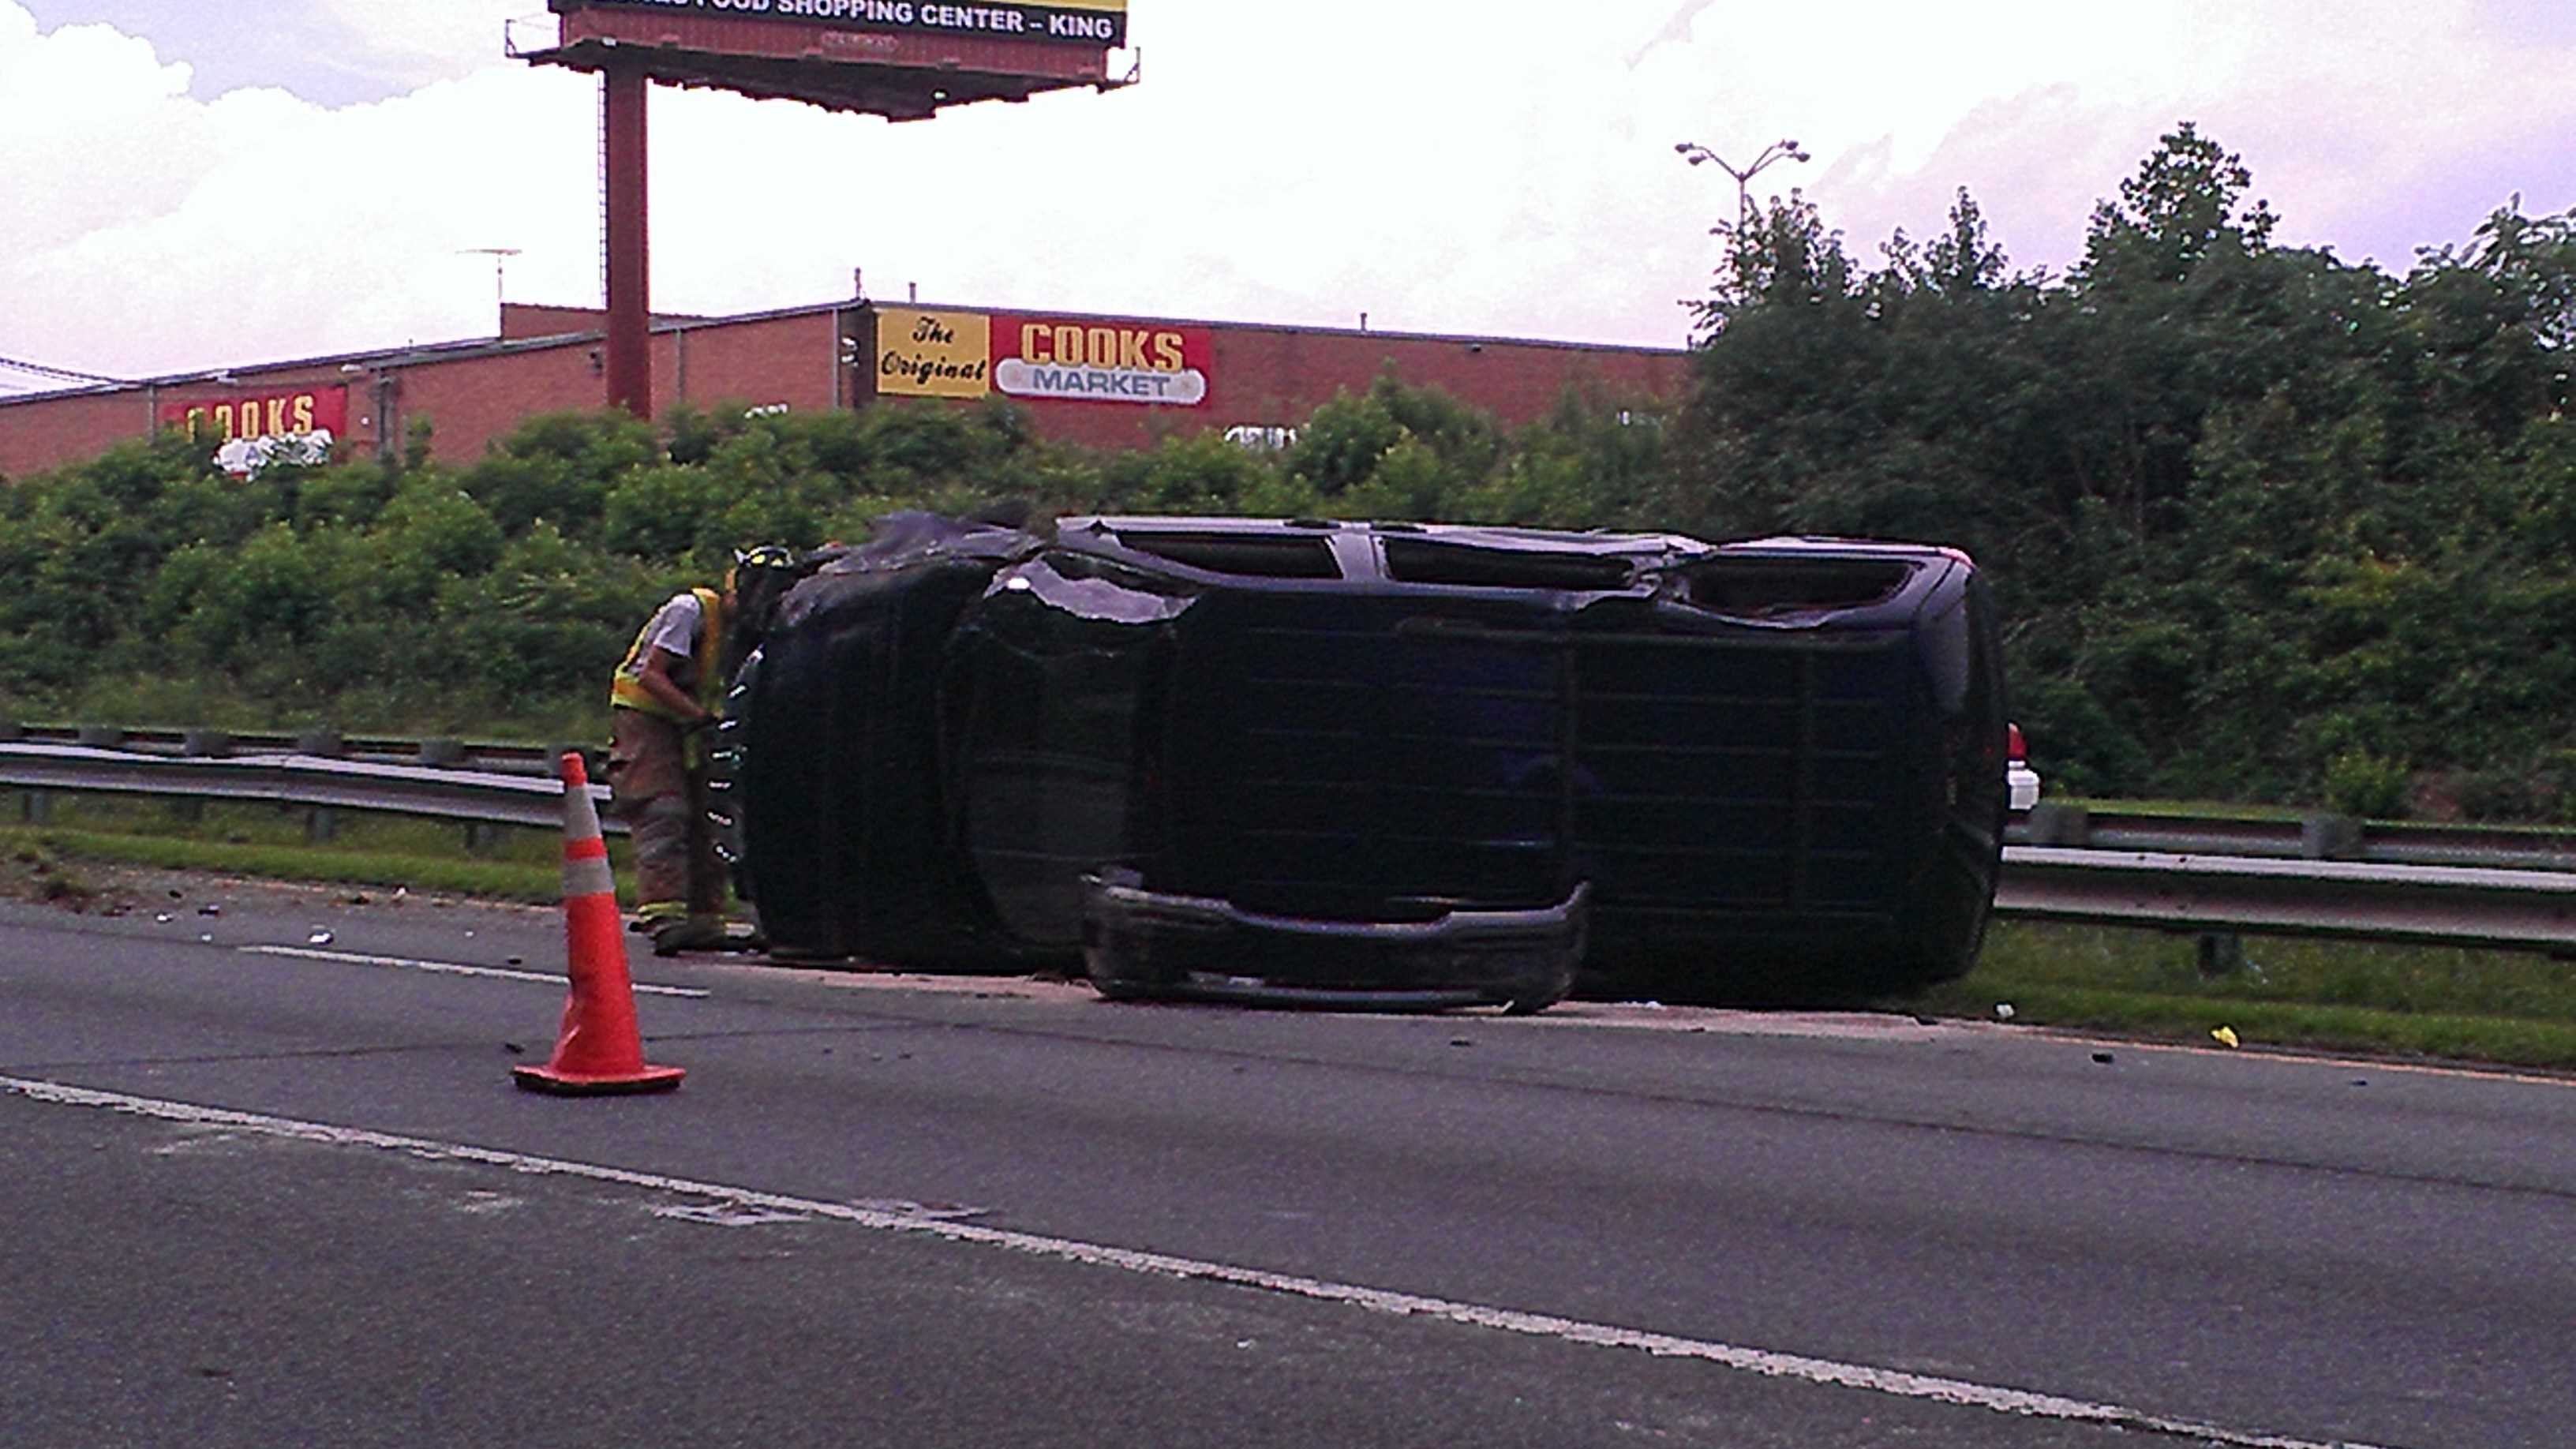 The accident occurred about 4:30 p.m. Monday. (Photo by WXII's Doug Miller)